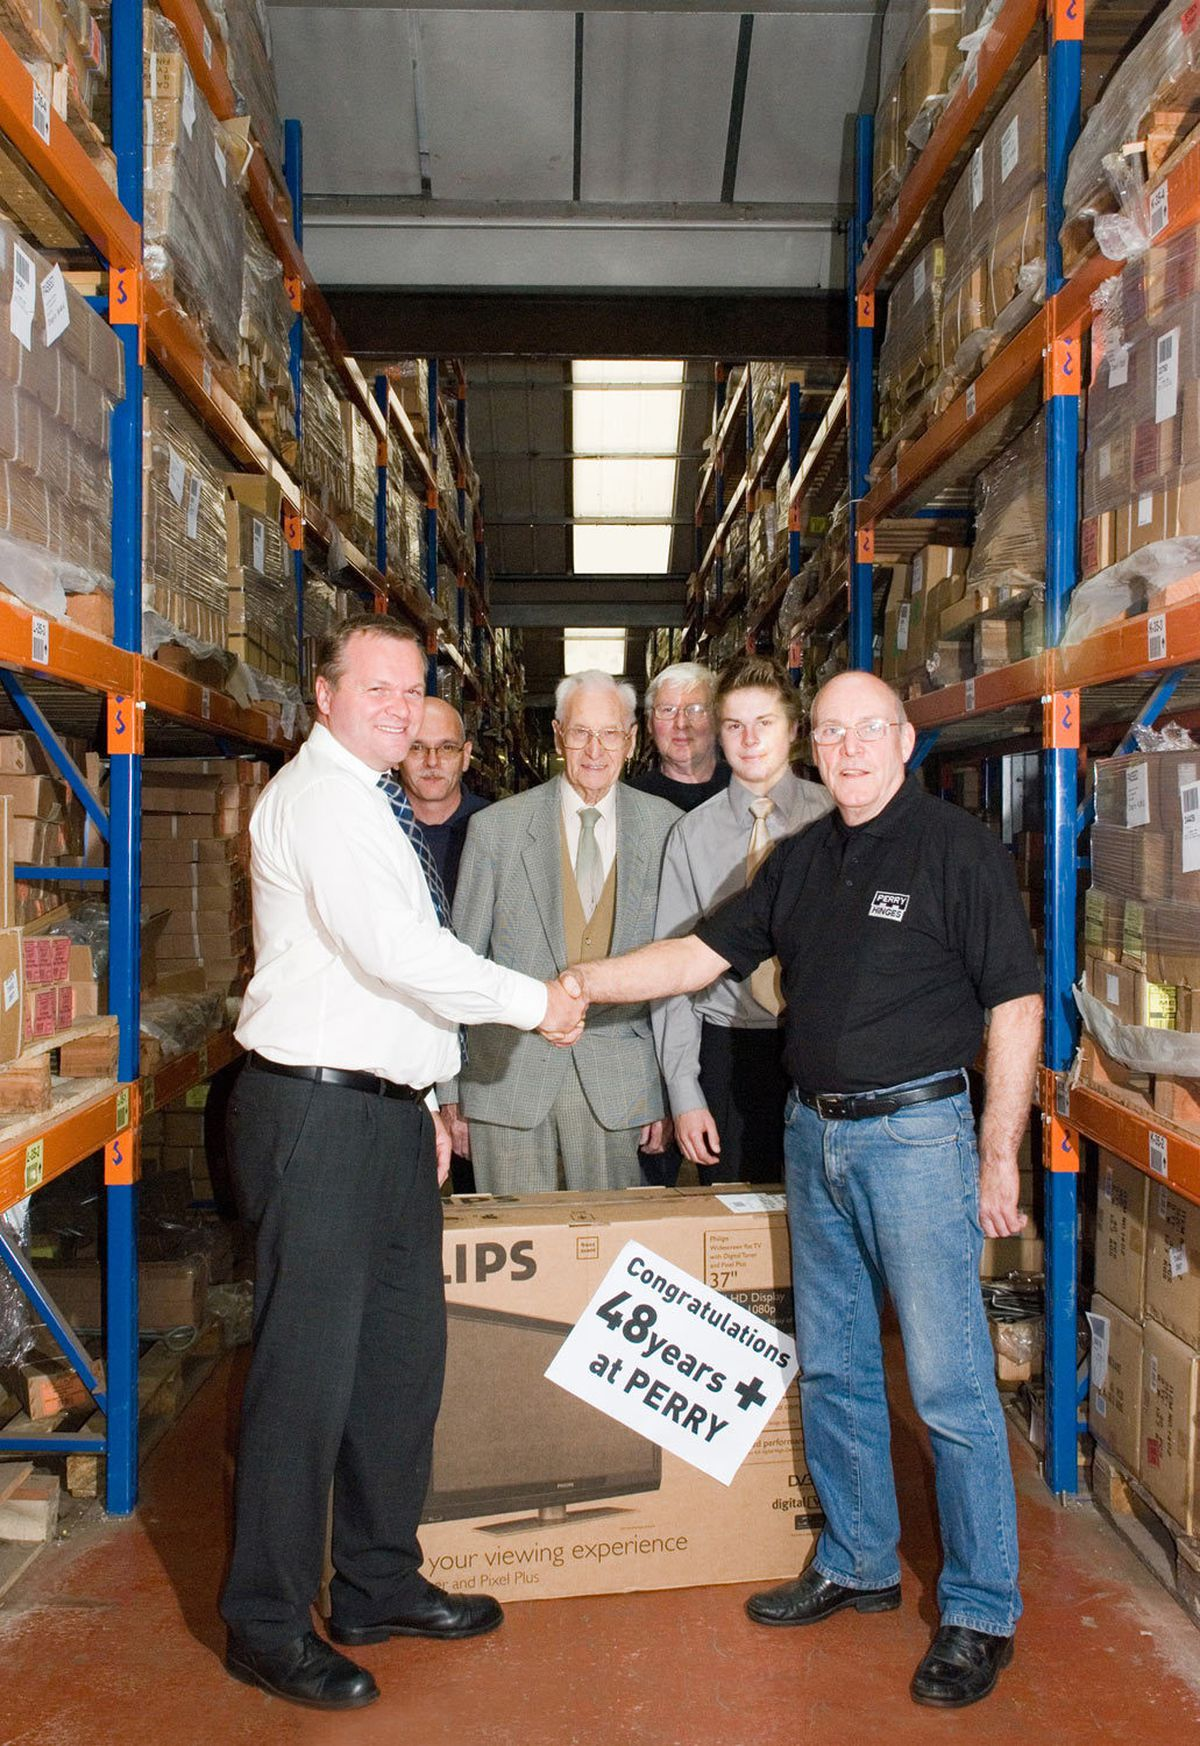 Barry Loughran, right, in 2012 when he was due to retire, with Guy Perry, operations director; Brian Lockley, works manager; Ernie Perry, chairman; Colin Clews, quality control; and Chris Perry, operations assistant